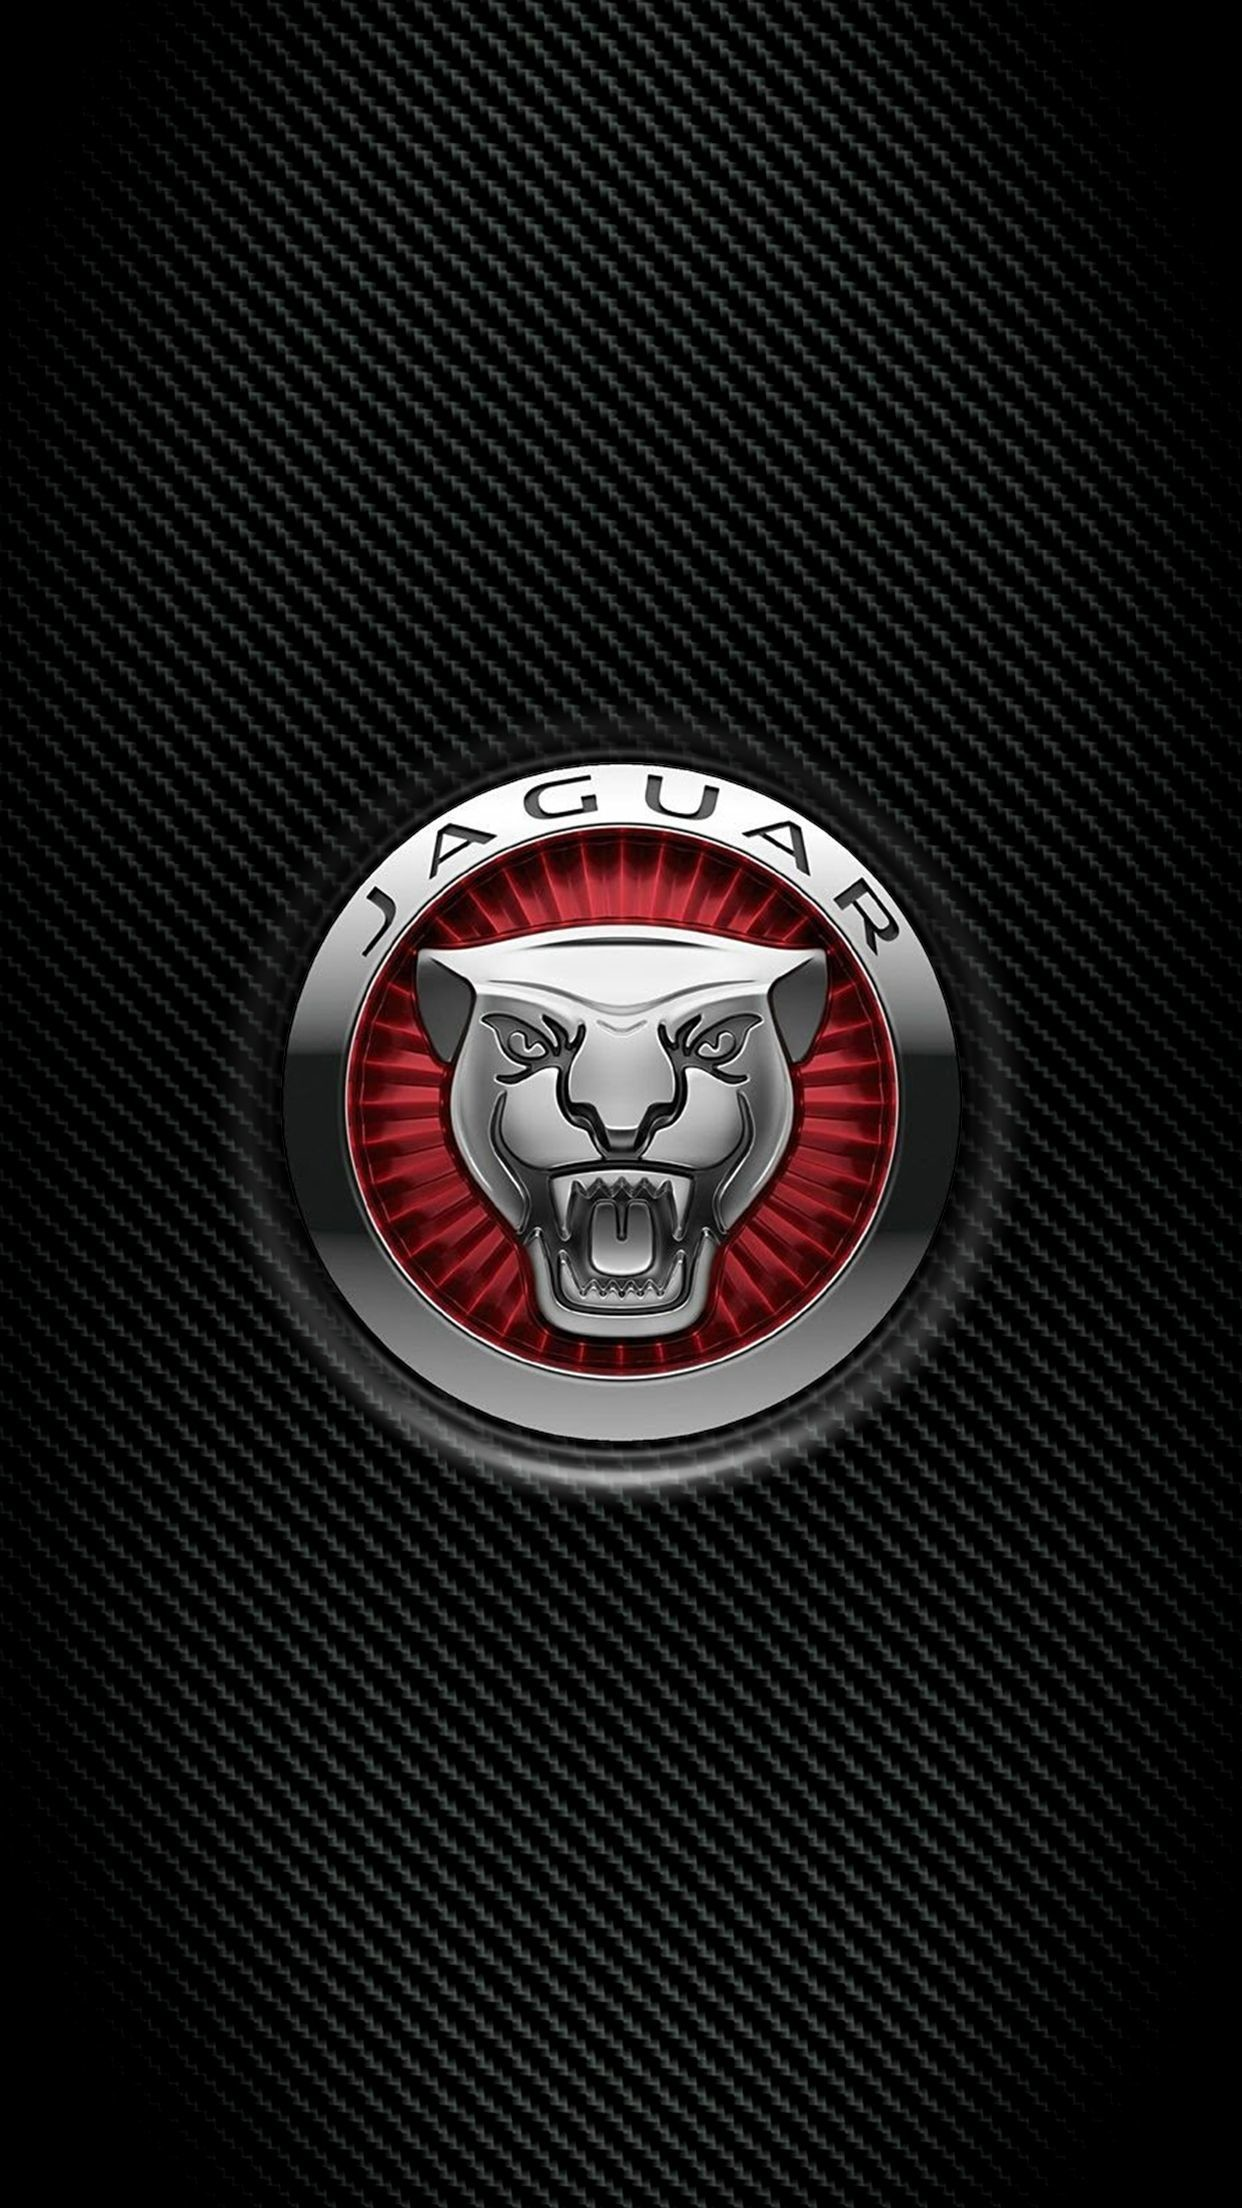 Jaguar Logo Wallpaper Screen Saver For Smartphone Jaguar Car Logo 4k 1672592 Hd Wallpaper Backgrounds Download